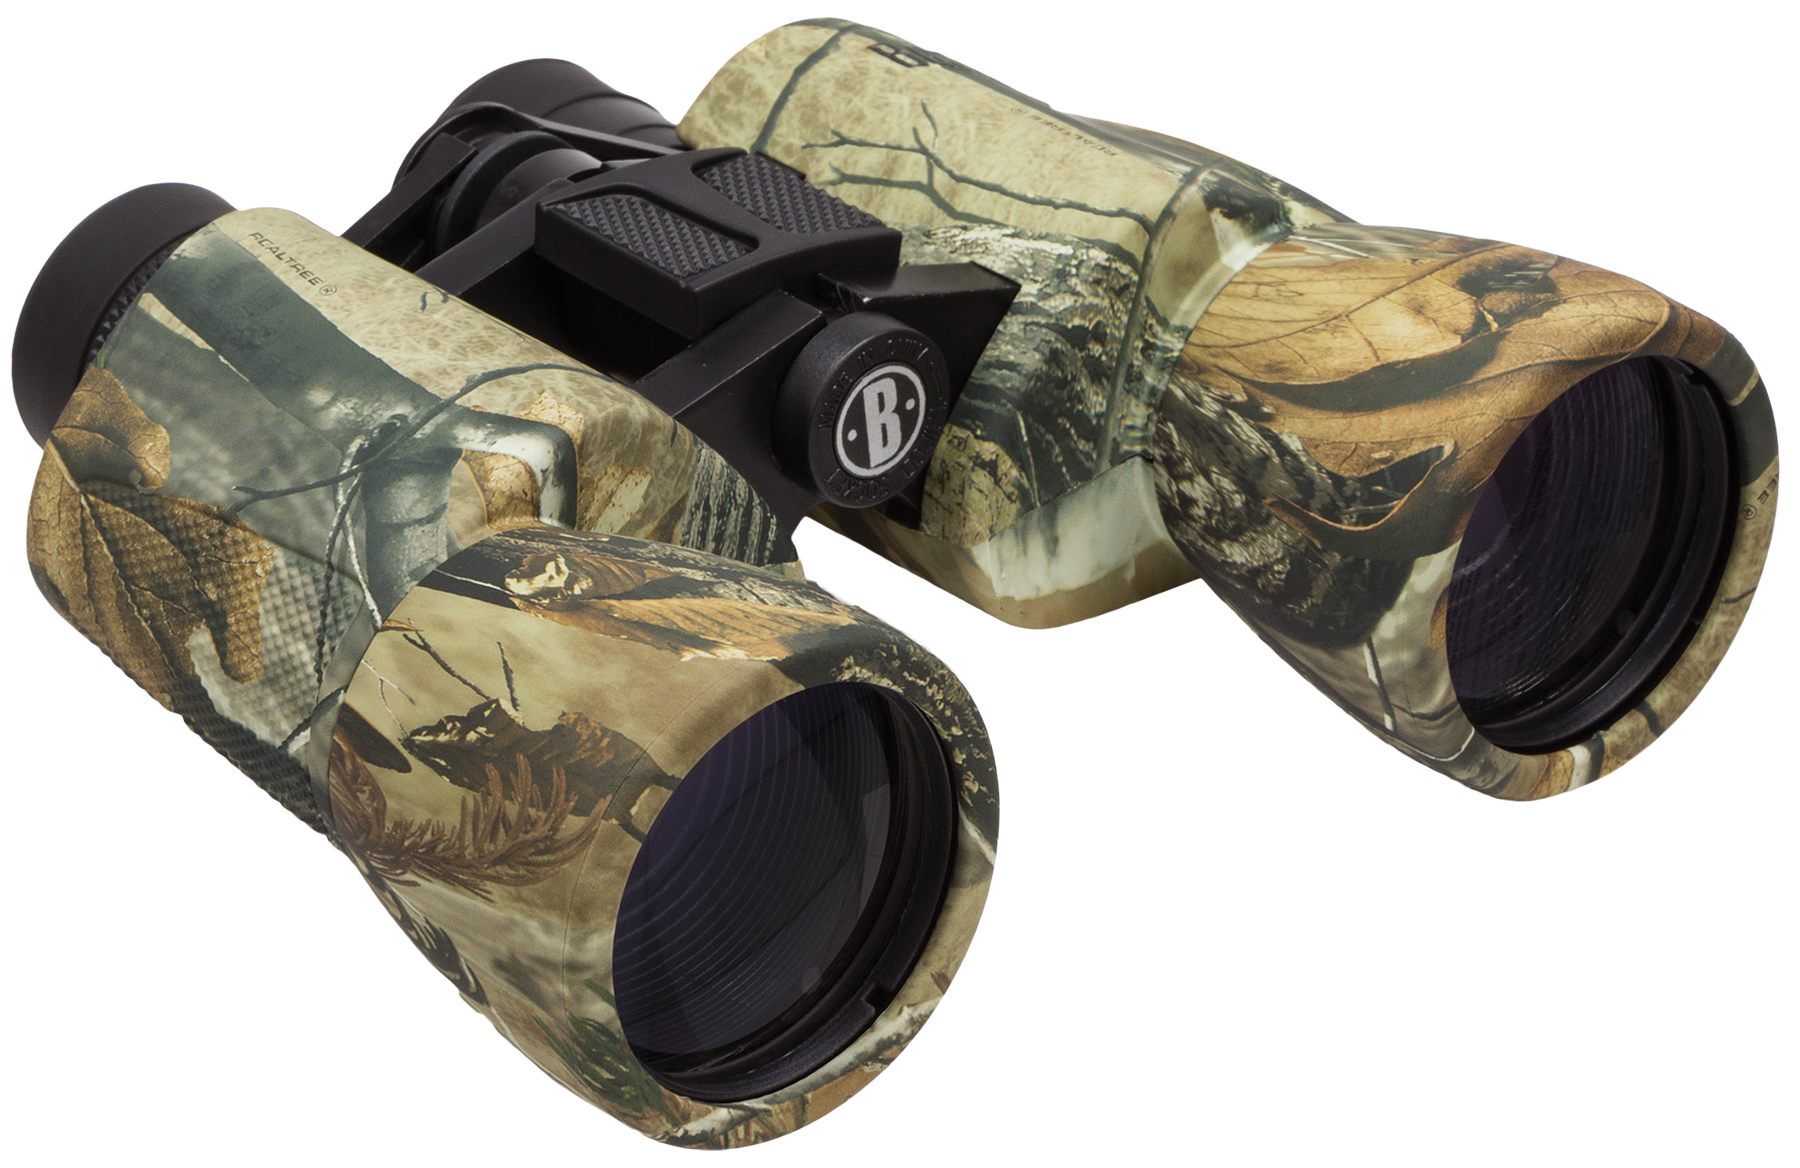 Bushnell 131055 Powerview 10x 50mm 341 ft @ 1000 yds FOV 10mm Eye Relief Realtree AP Rubber Armor